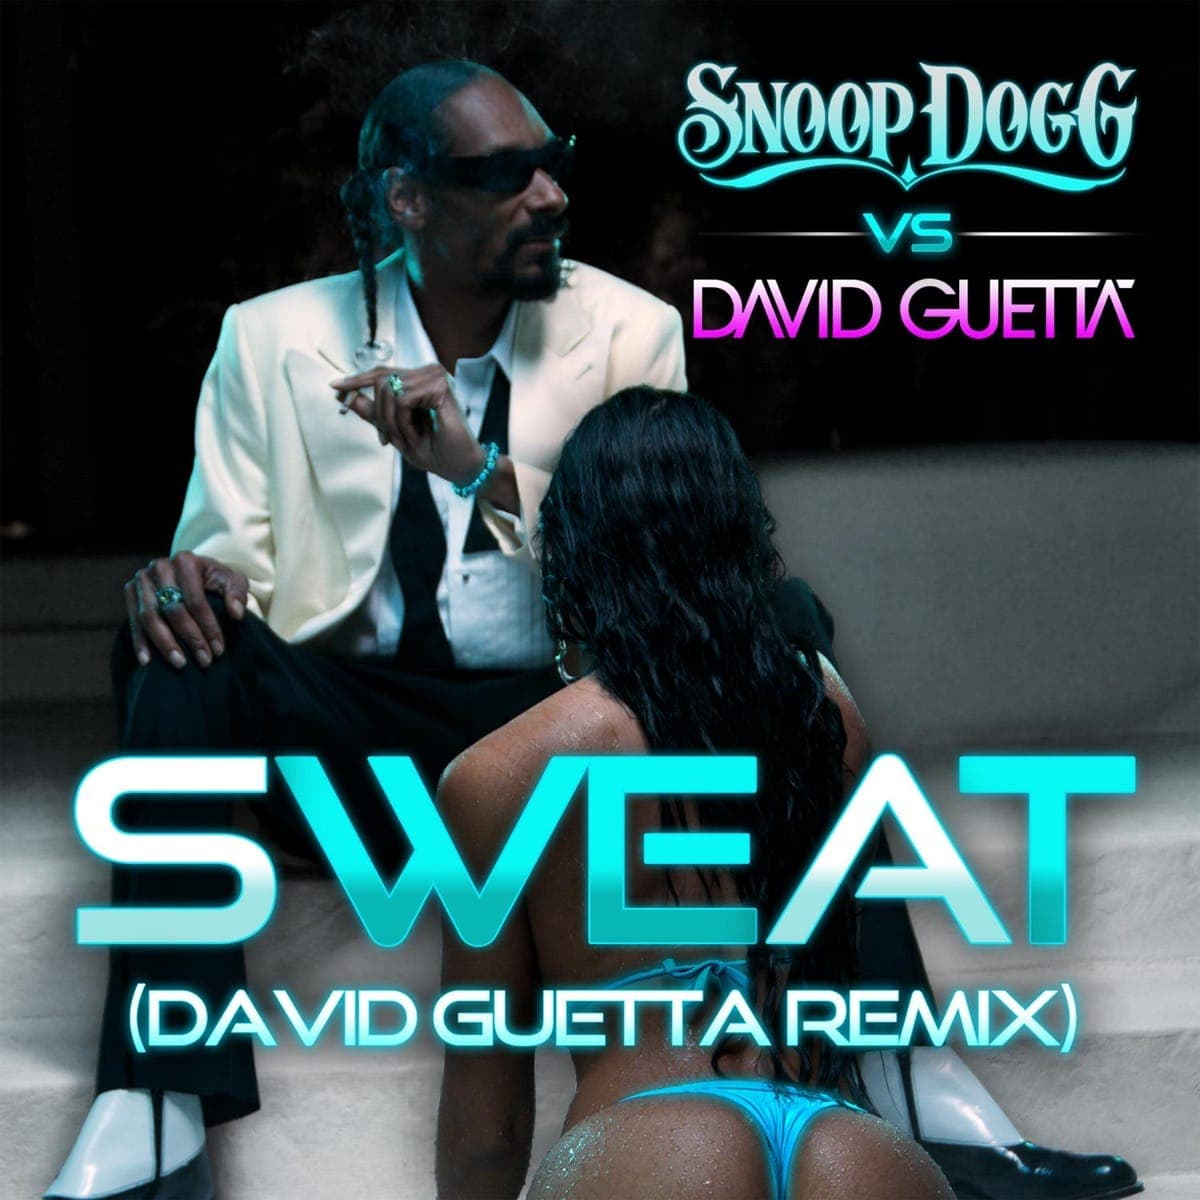 Sweat - Snoop Dogg & David Guetta